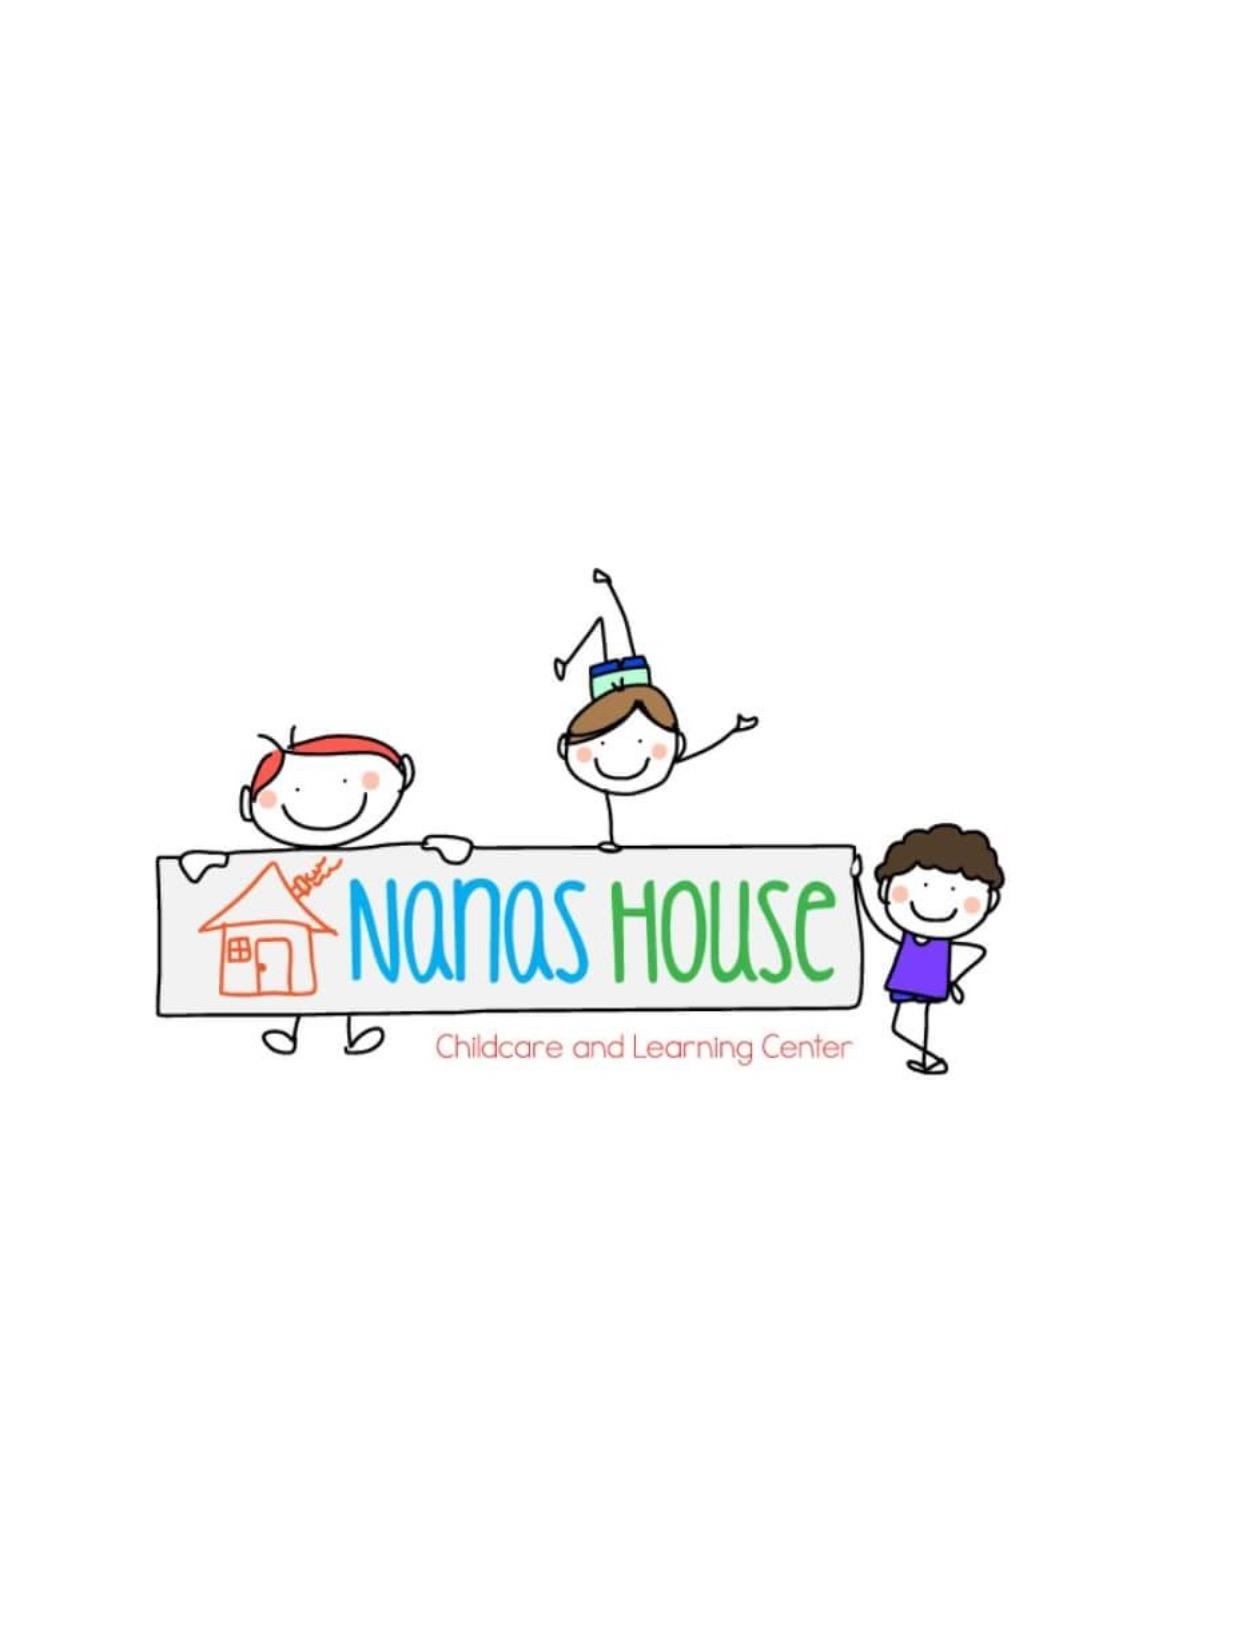 Nana's House Childcare and Learning Center